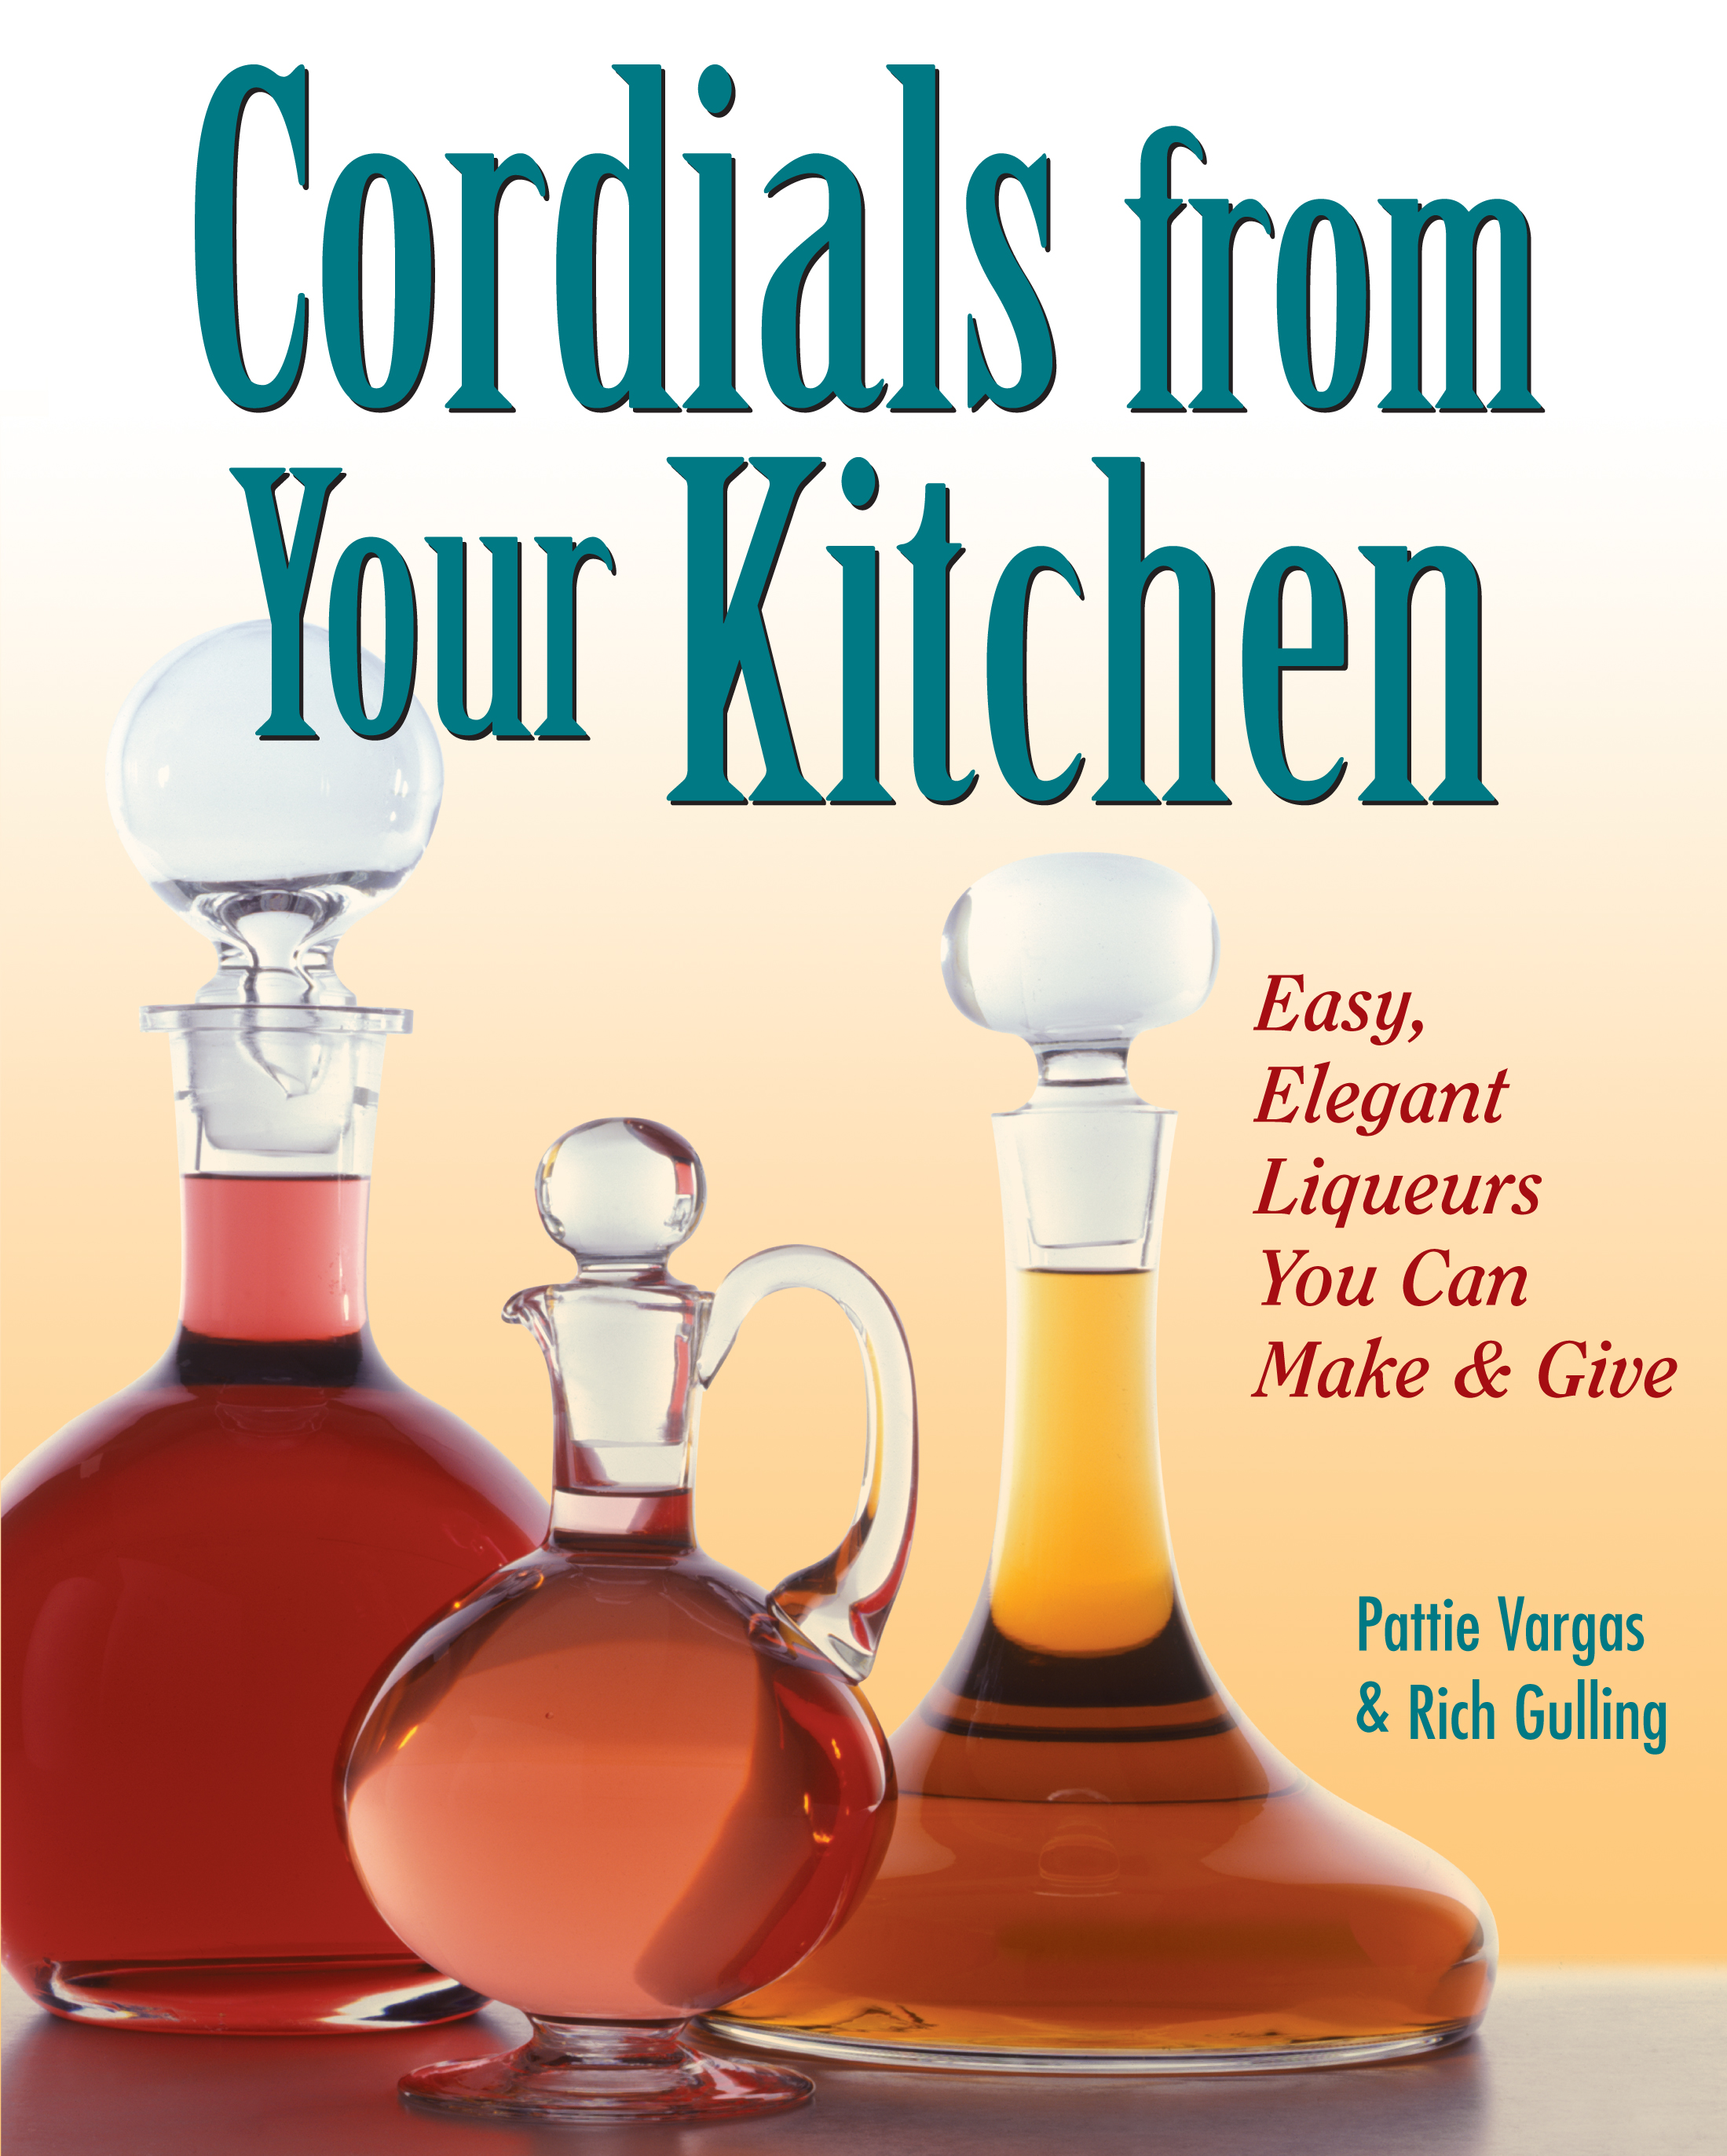 Cordials from Your Kitchen Easy, Elegant Liqueurs You Can Make & Give - Rich Gulling